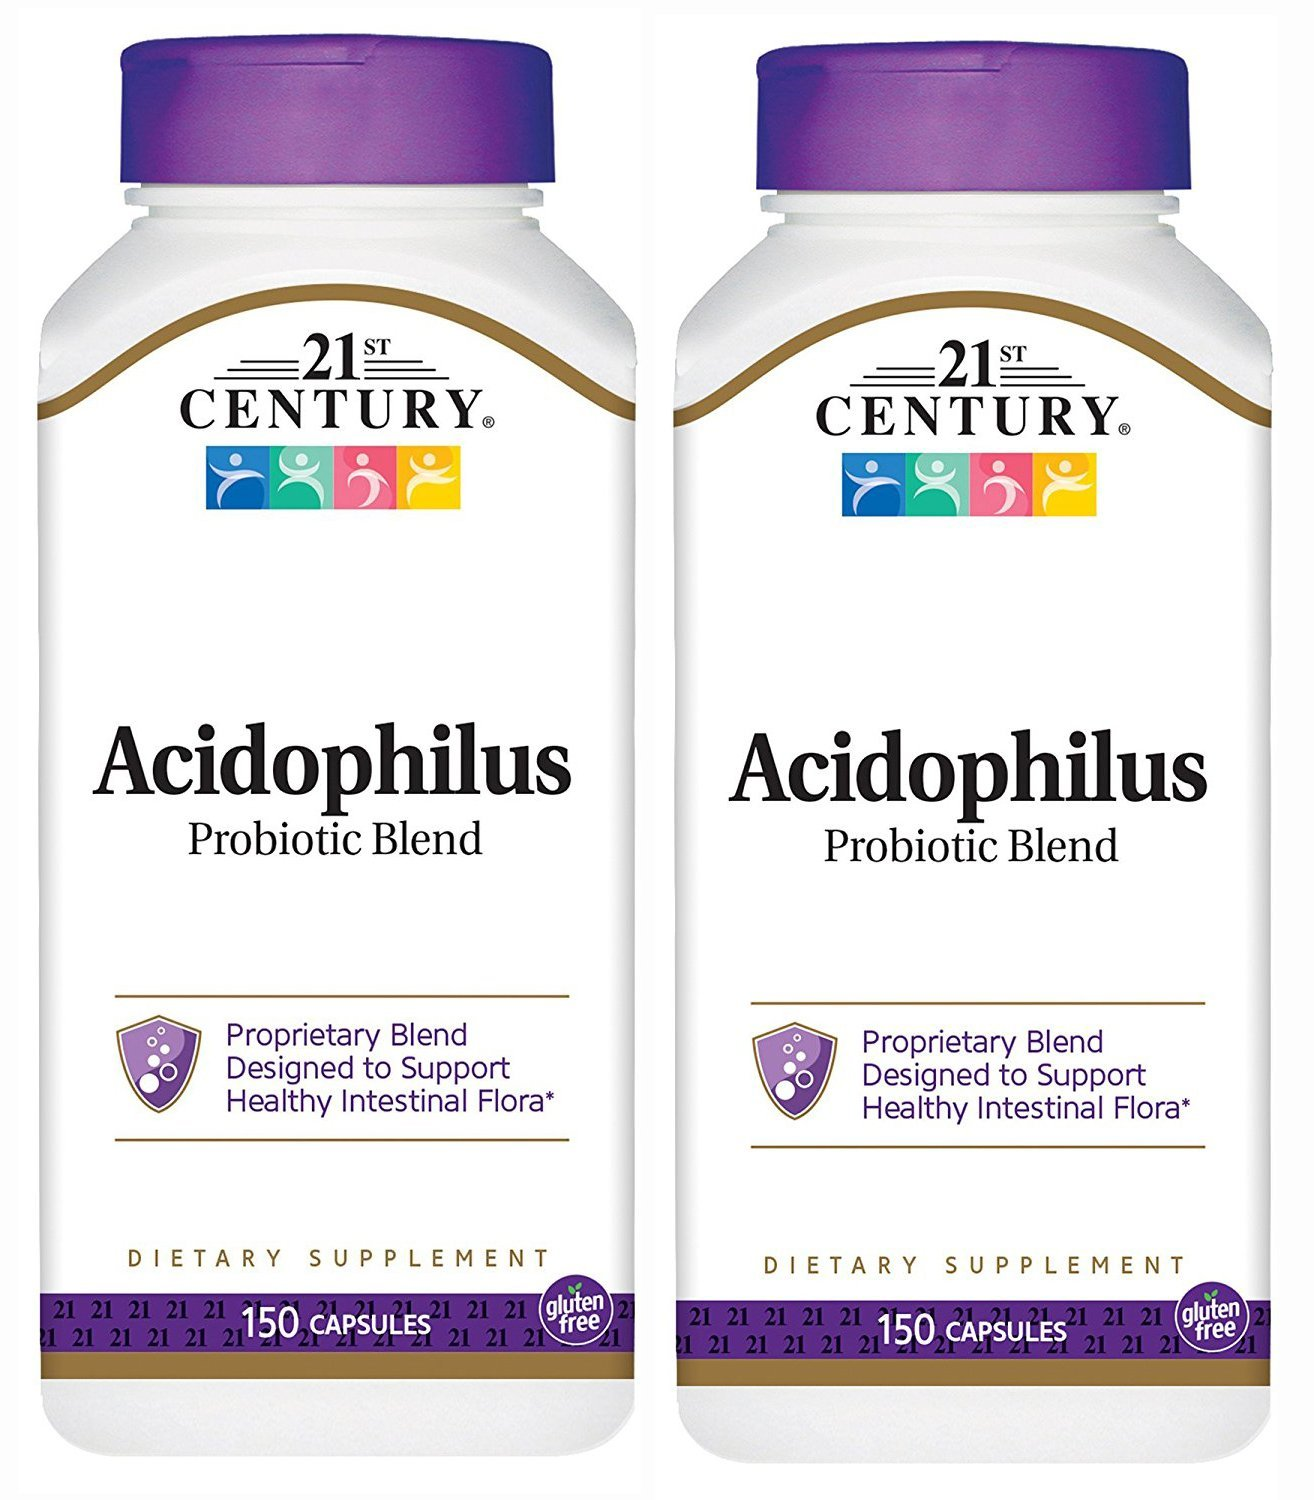 21st Century Acidophilus Probiotic Blend Capsules, 150-Count (Pack of 2)